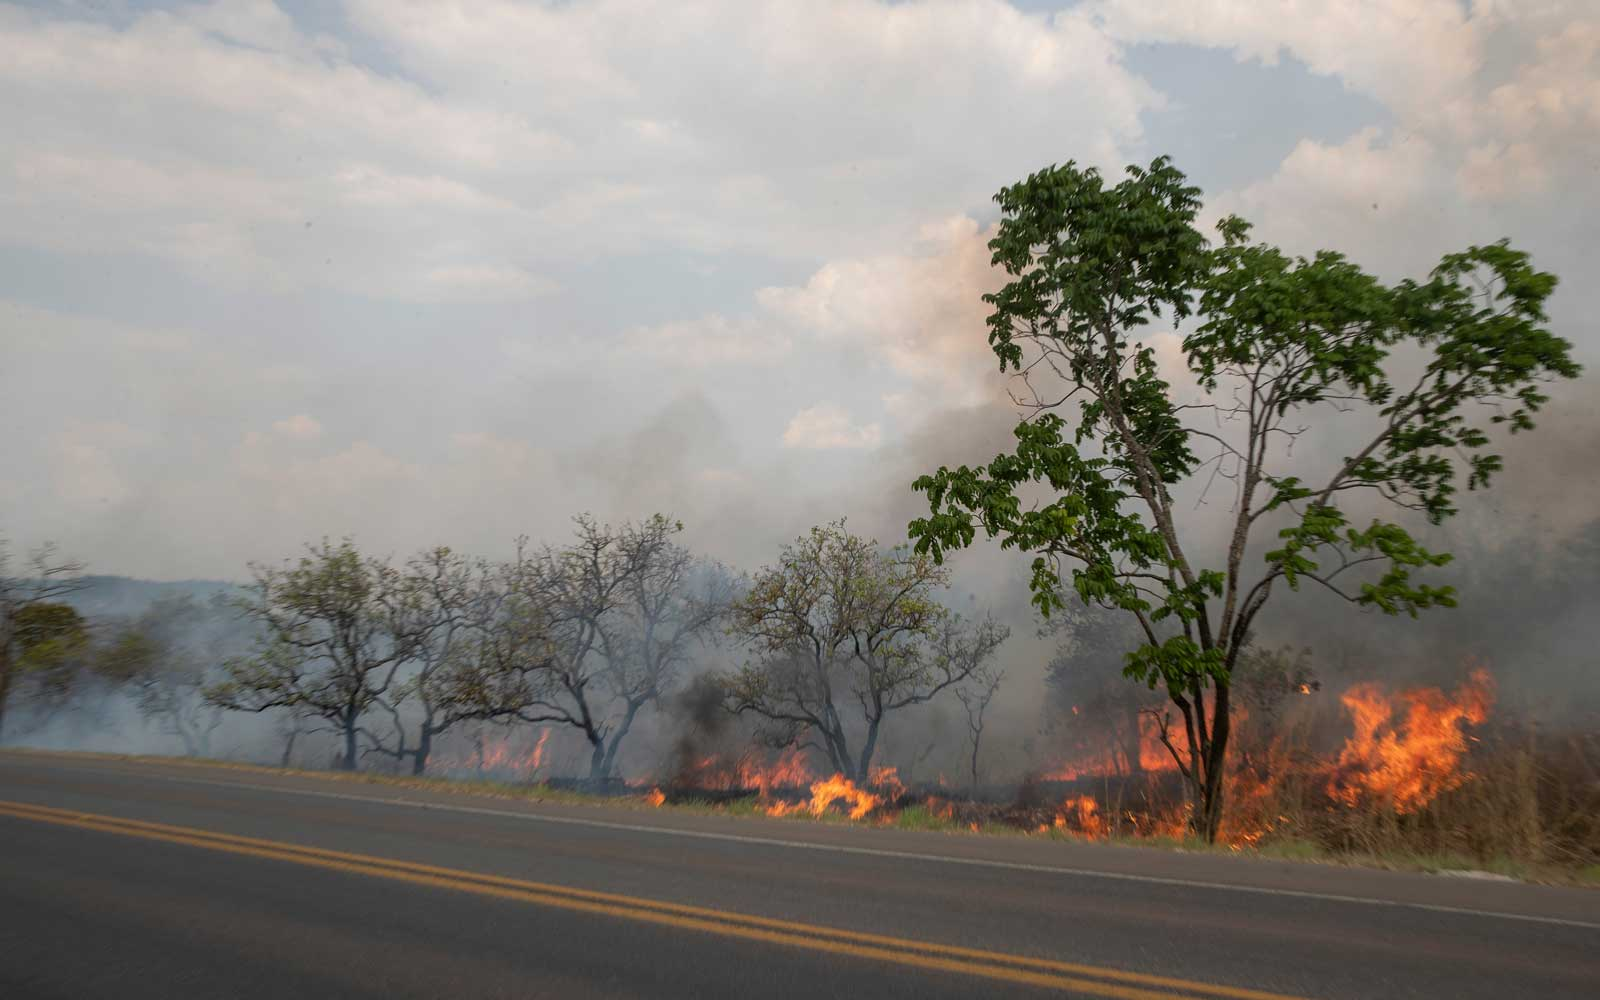 Fire consumes a field along the BR 070 highway near Cuiaba, Mato Grosso state, Brazil